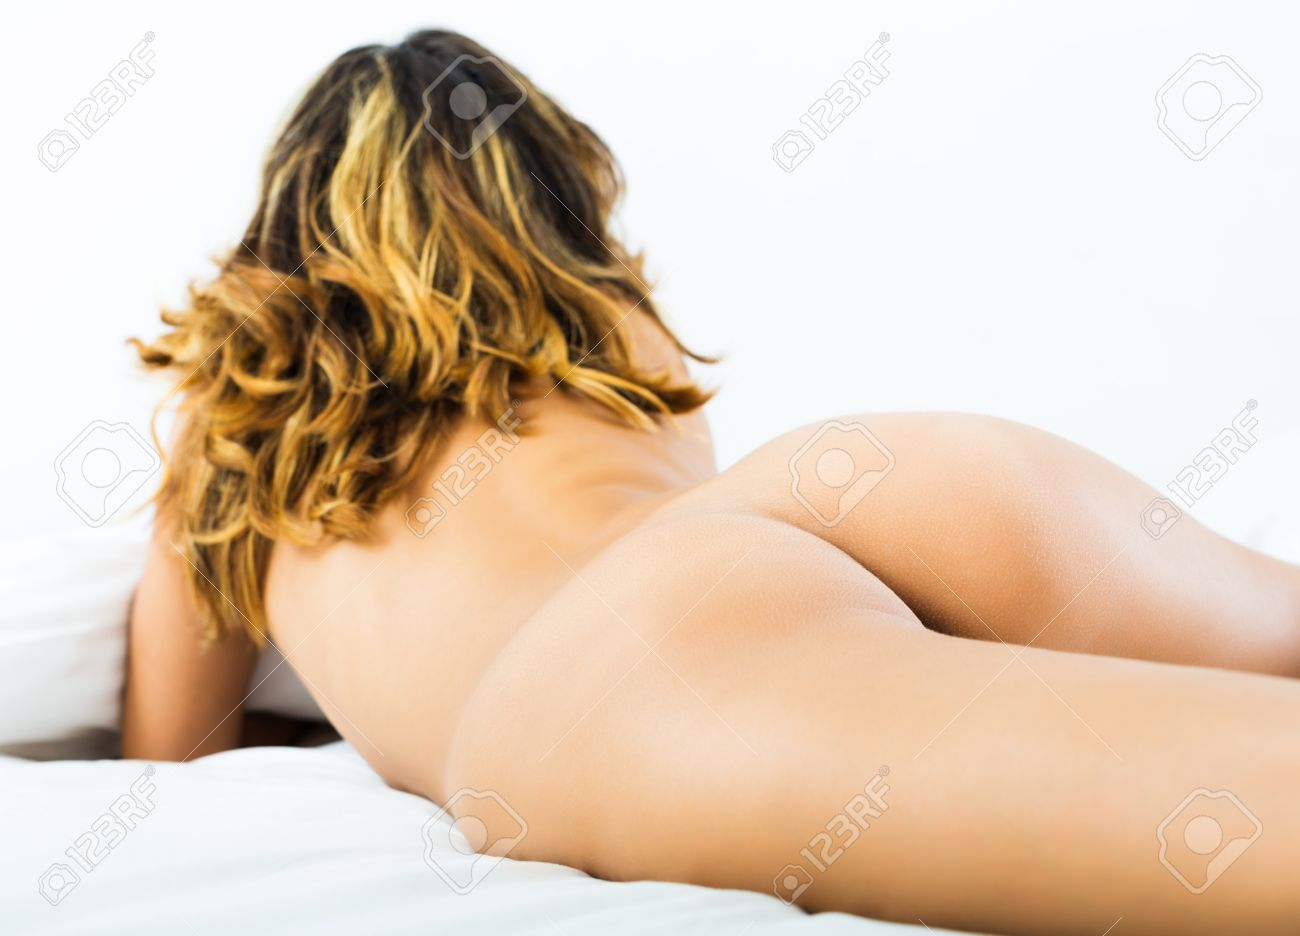 young-funny-nudes